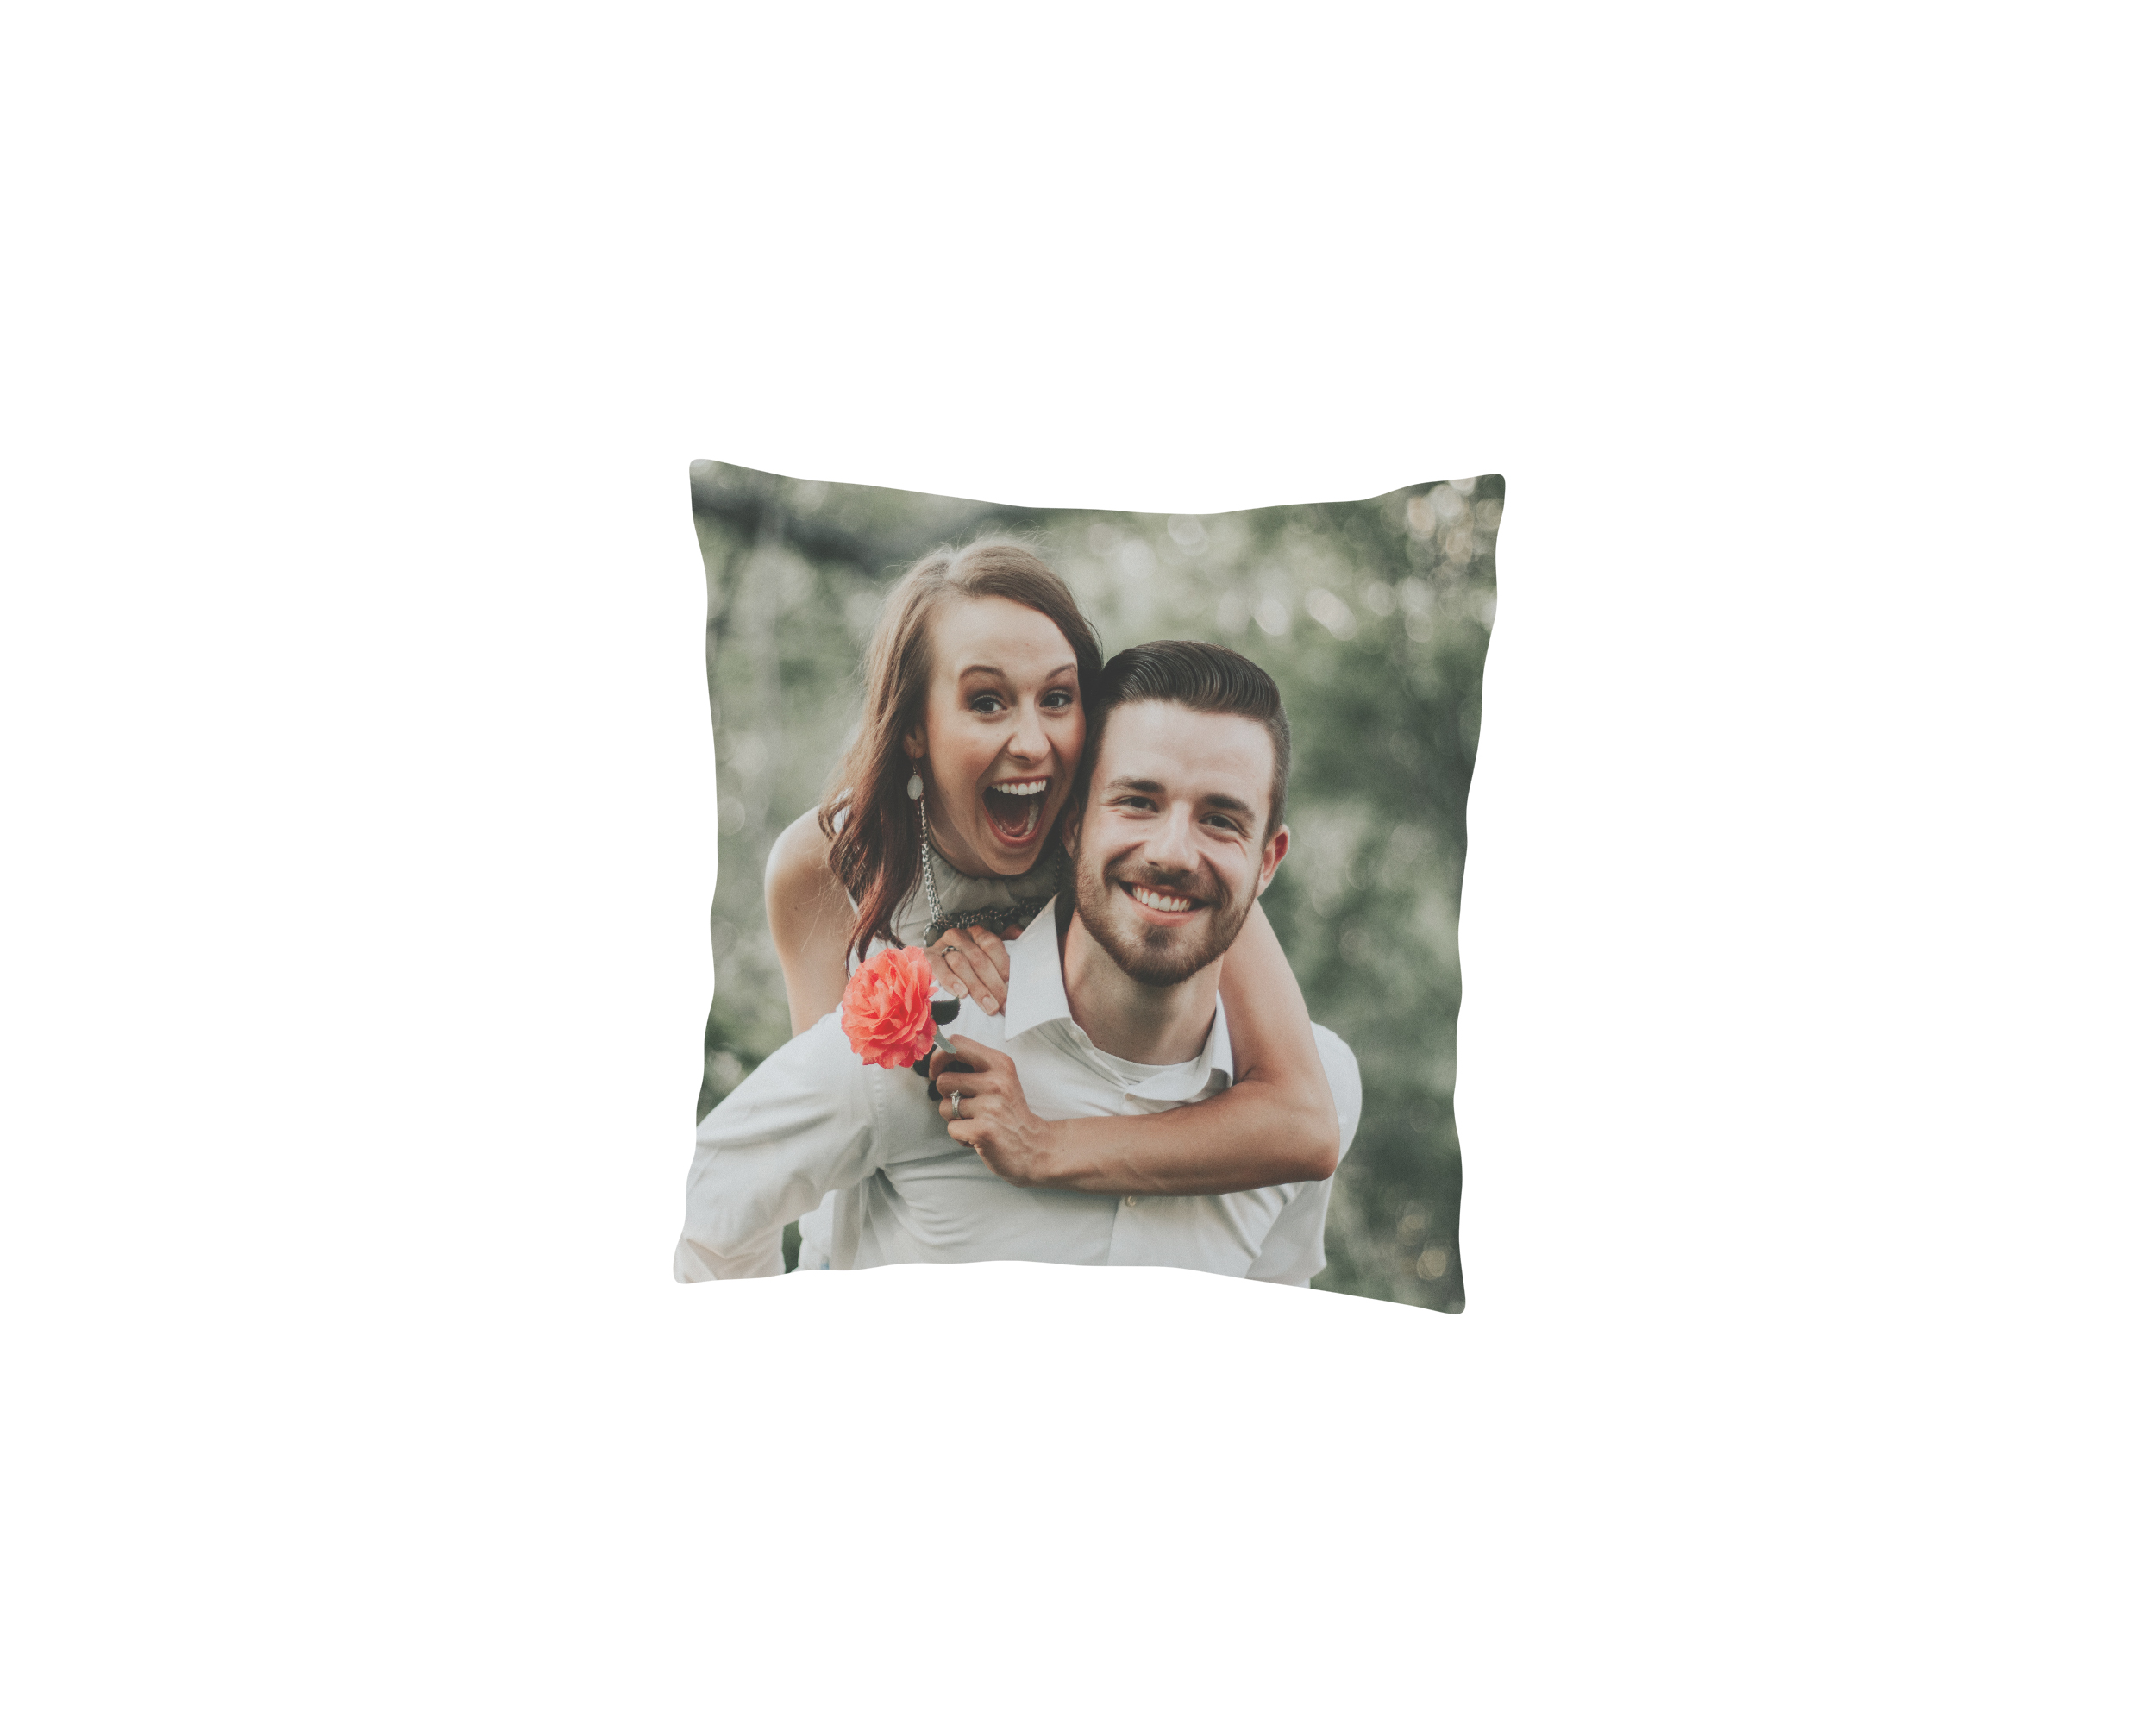 Photo Pillows: How they Make a Great Gifting Object